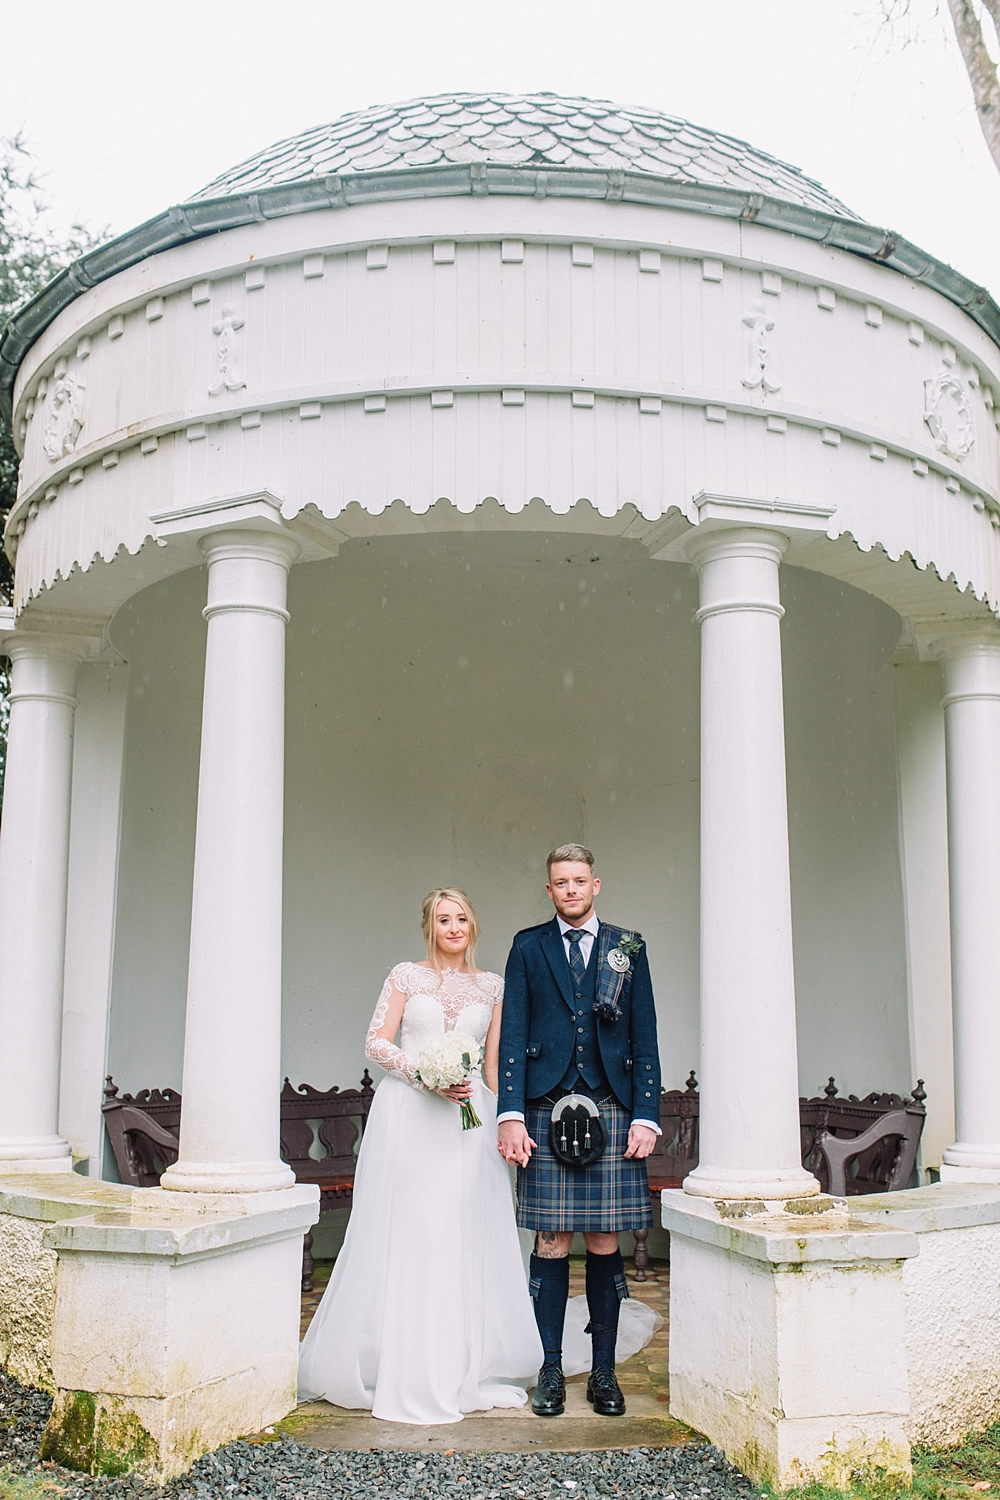 The Gibsons,Wedding Barony Castle,husband and wife photographers scotland,natural wedding photographers,romantic wedding photographers,romantic wedding photographers scotland,scottish borders wedding photographers,soft wedding photographers,wedding photographers glasgow,